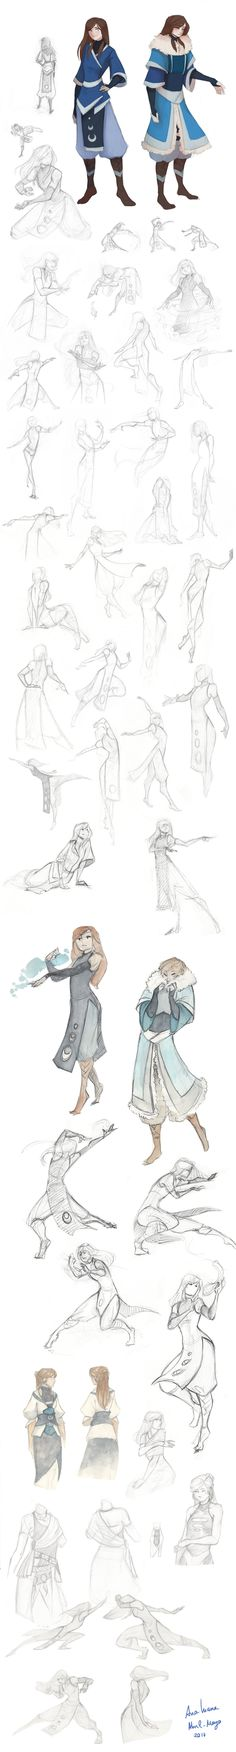 -Waterbender sketches- by Zaiisey